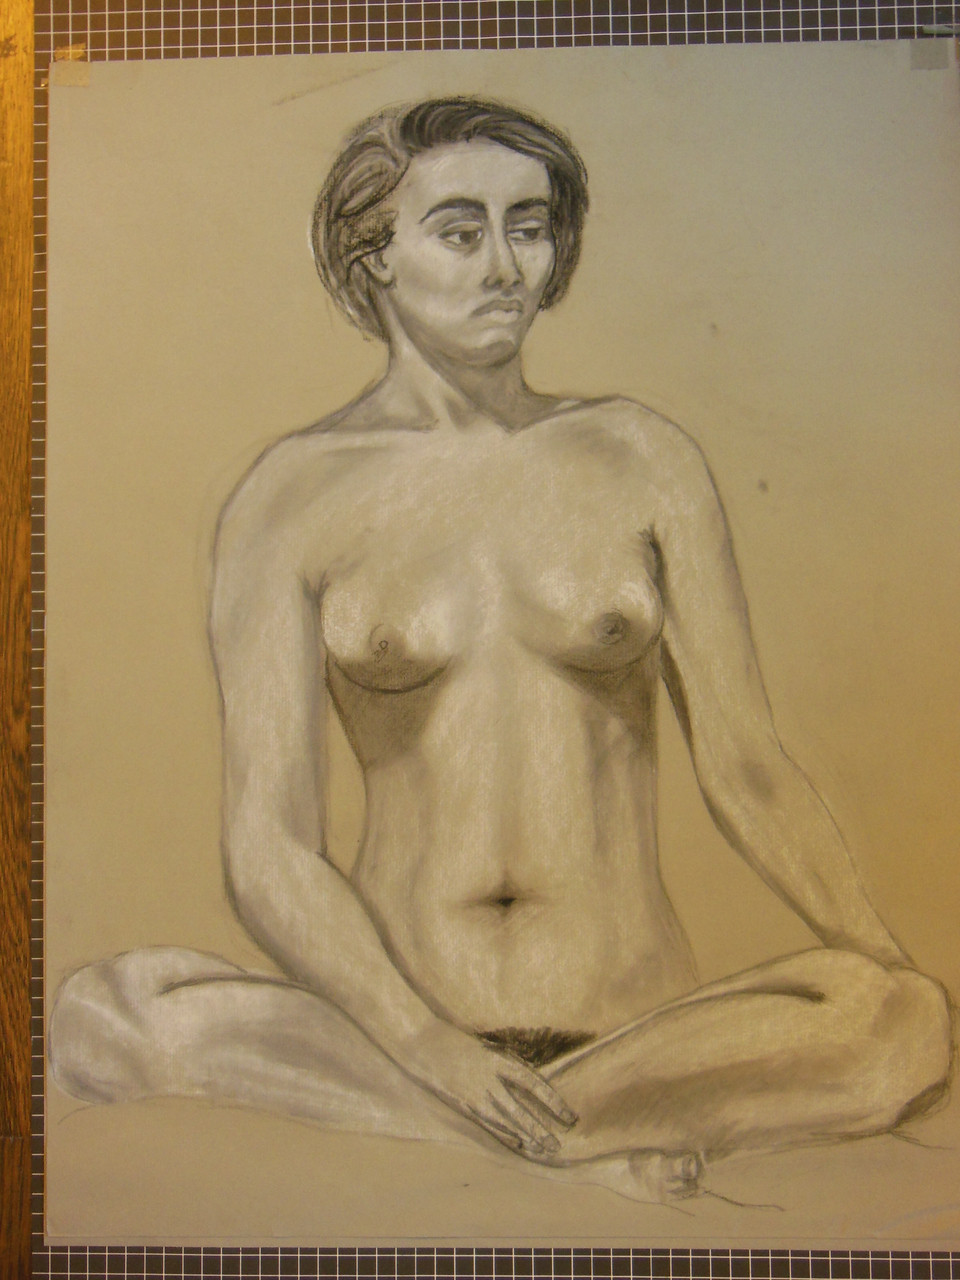 Nude Drawing: Charcoal & pastel on grey paper. 17